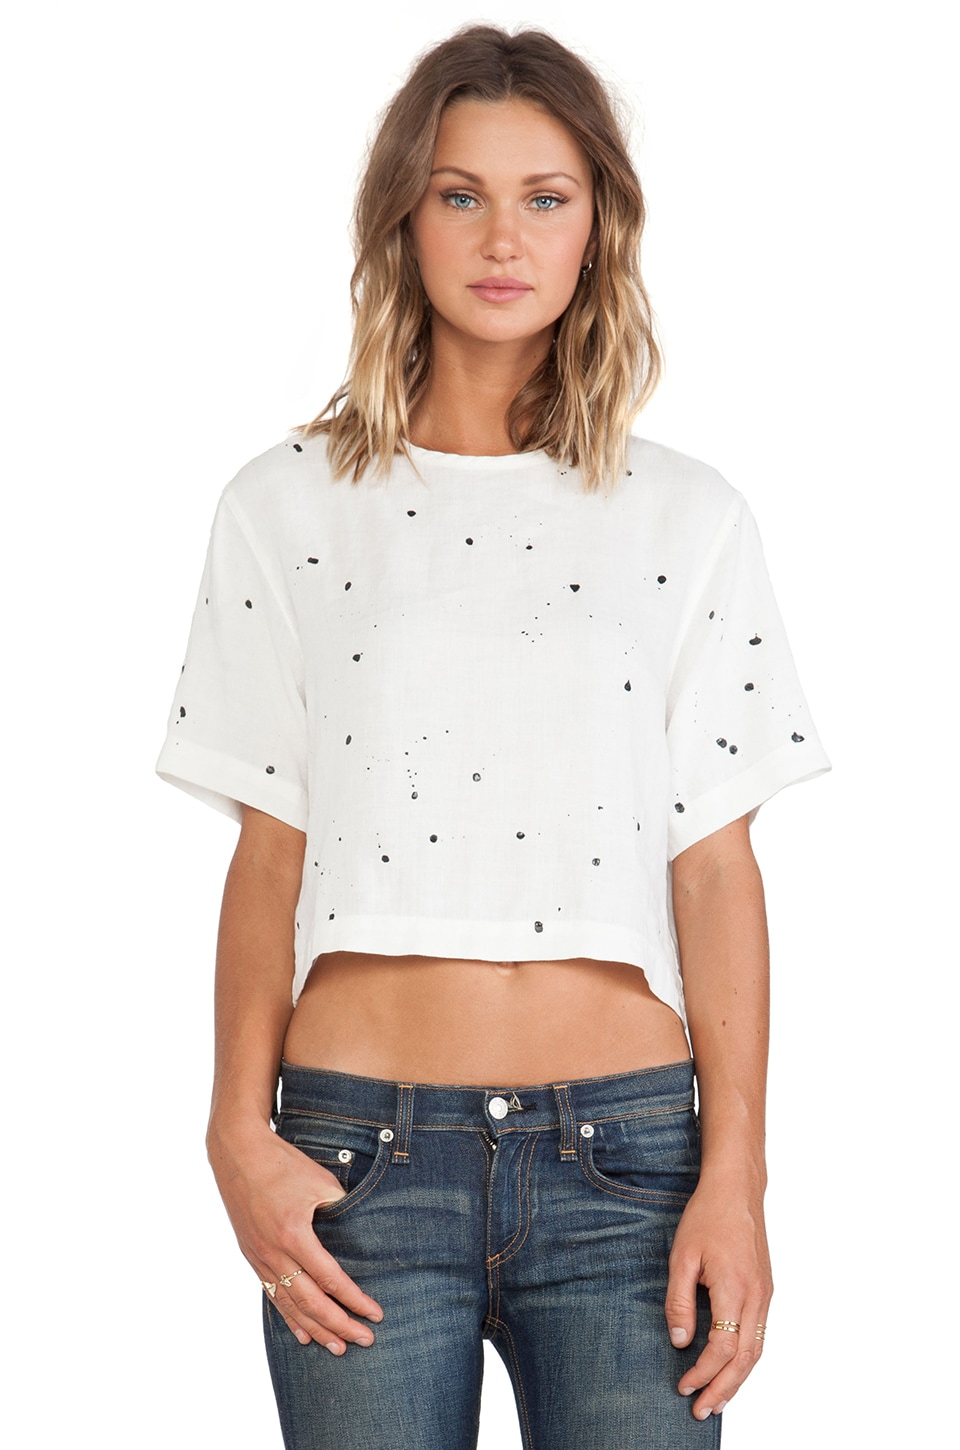 rag & bone/JEAN Crop Top in White Splatter